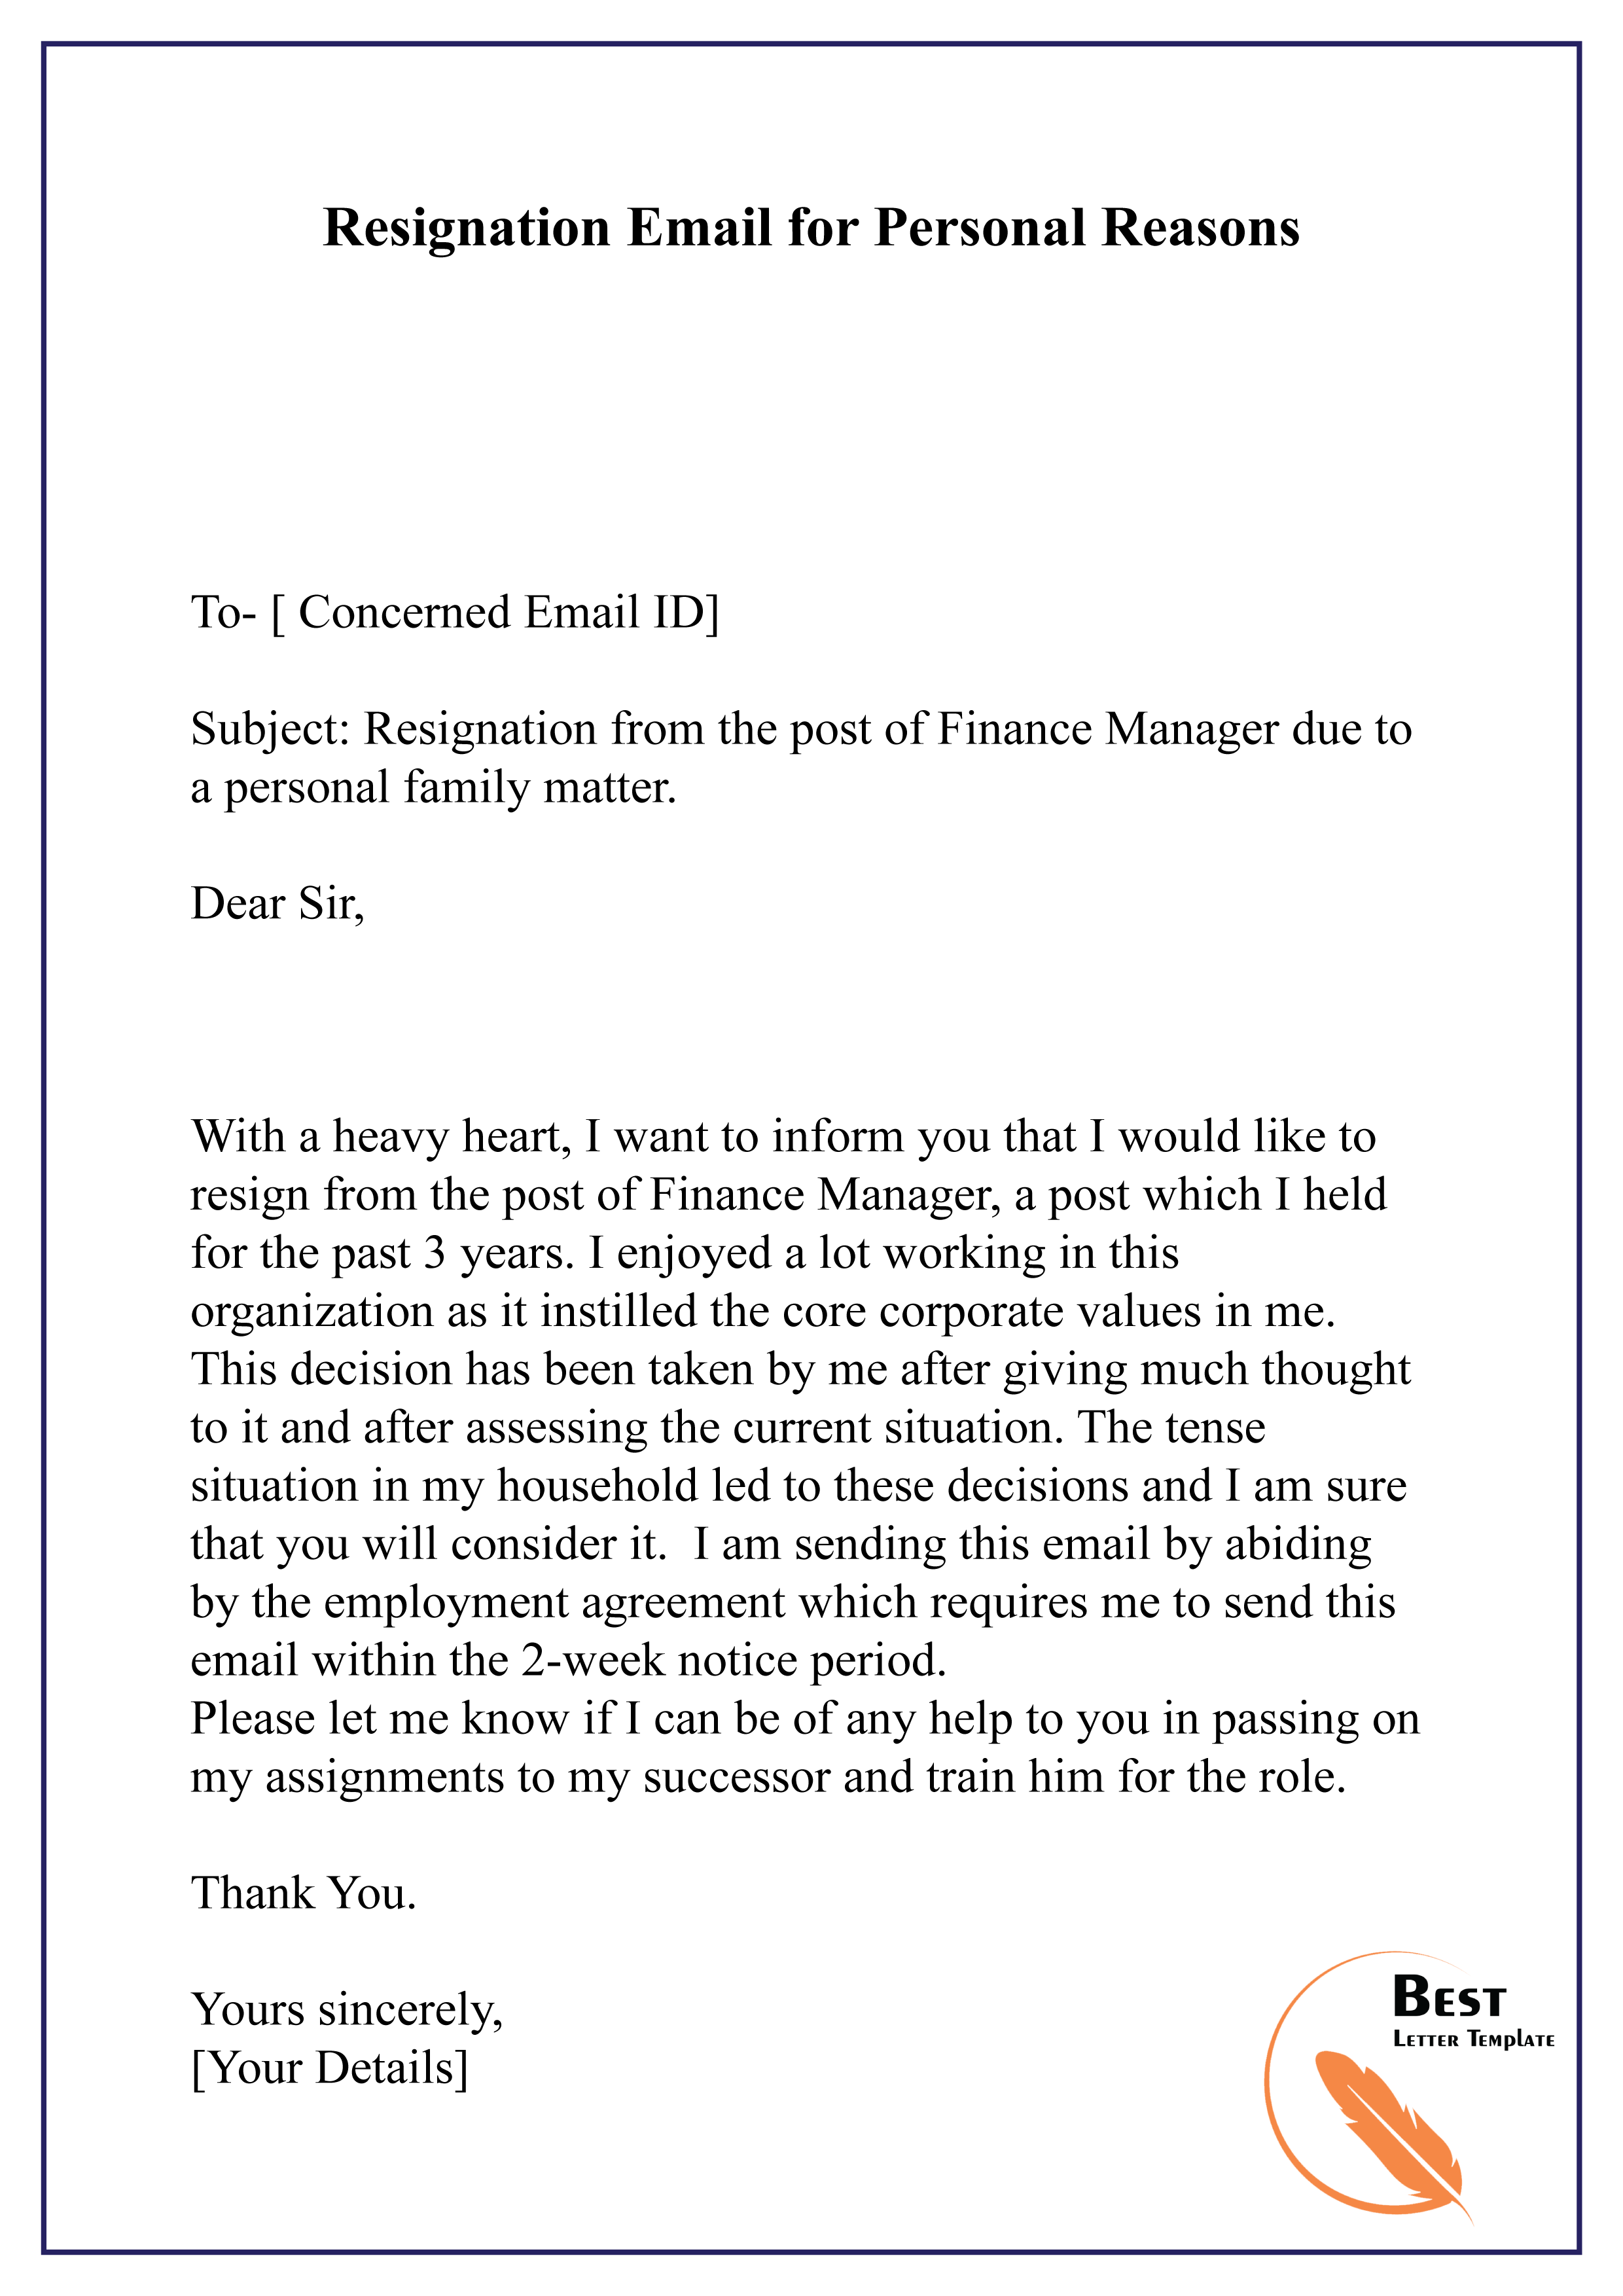 Resignation Letter Template For Personal Reasons What